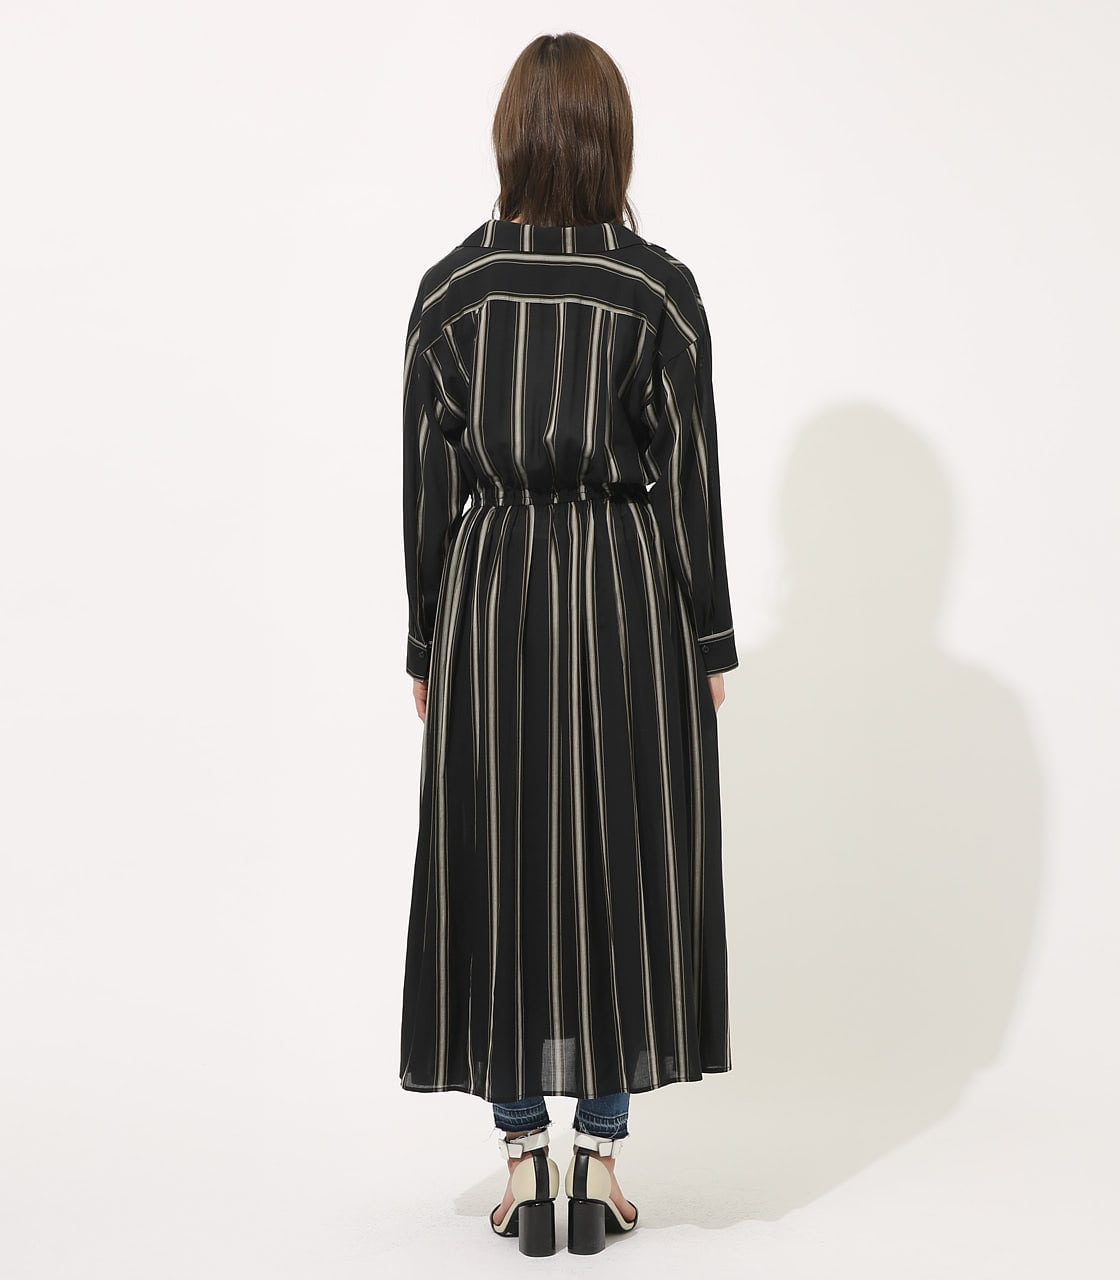 【AZUL BY MOUSSY】BROWSING MAXI ONEPIECE 【MOOK49掲載 90037】 詳細画像 柄BLK 5